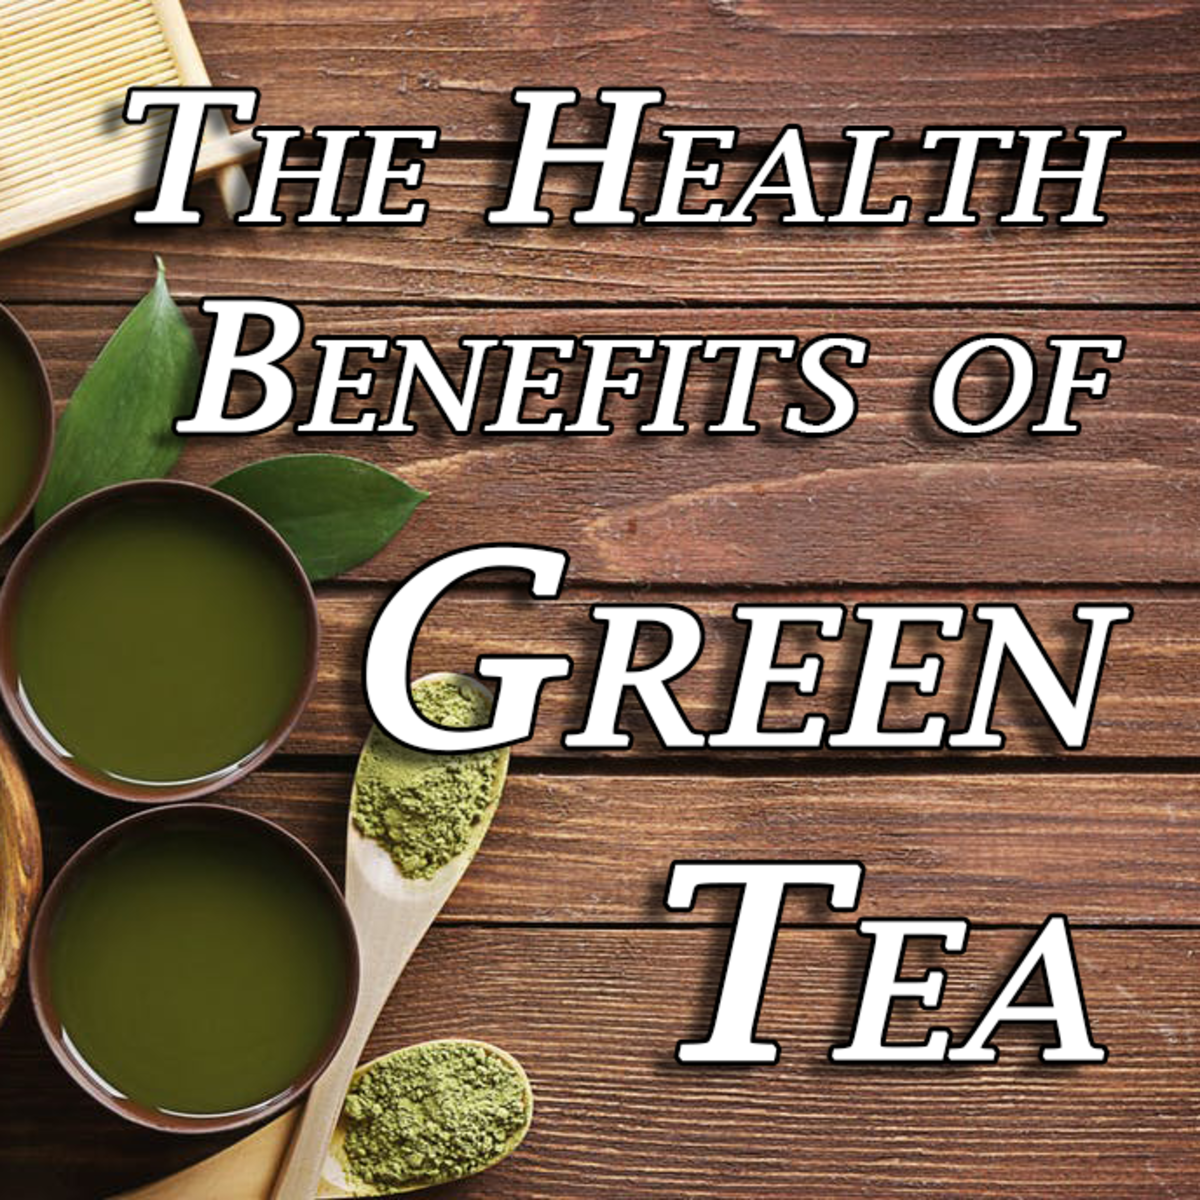 A Glass a Day Keeps the Doctor Away: The Health Benefits of Green Tea